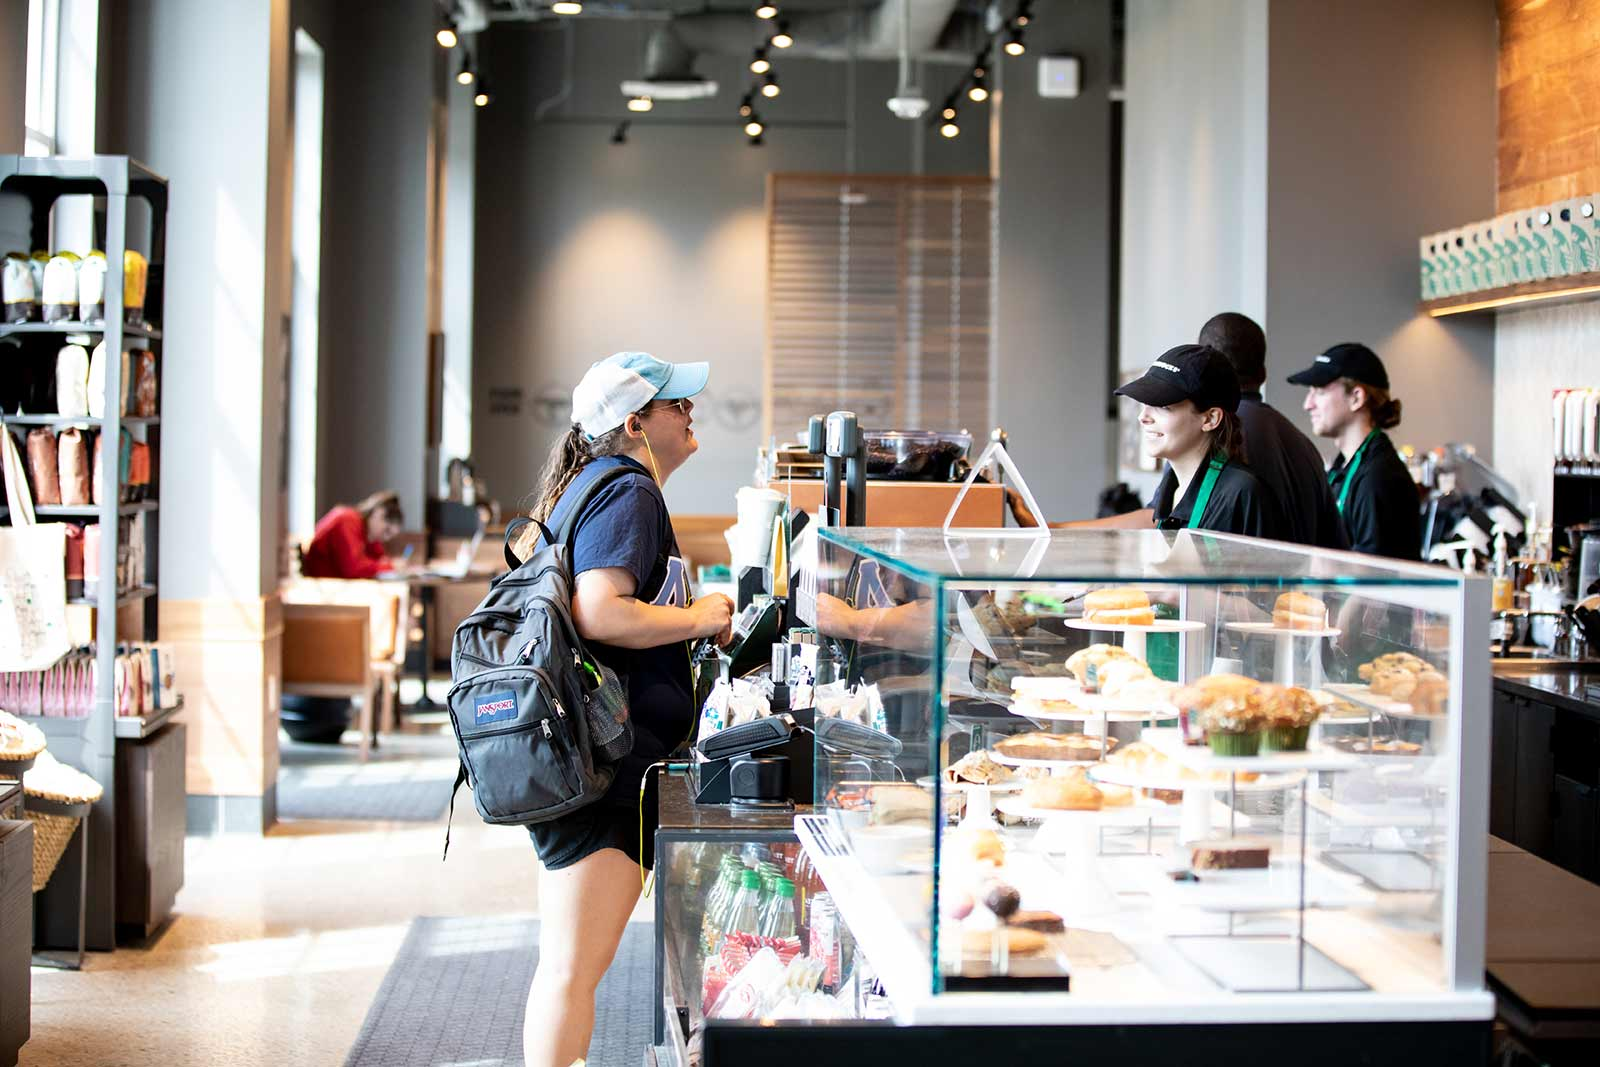 Need an afternoon cold brew caffeine pick-me-up? Upchurch University Center is the vibrant hub of student life and activity, housing a food court with three restaurant options, plus Starbucks.